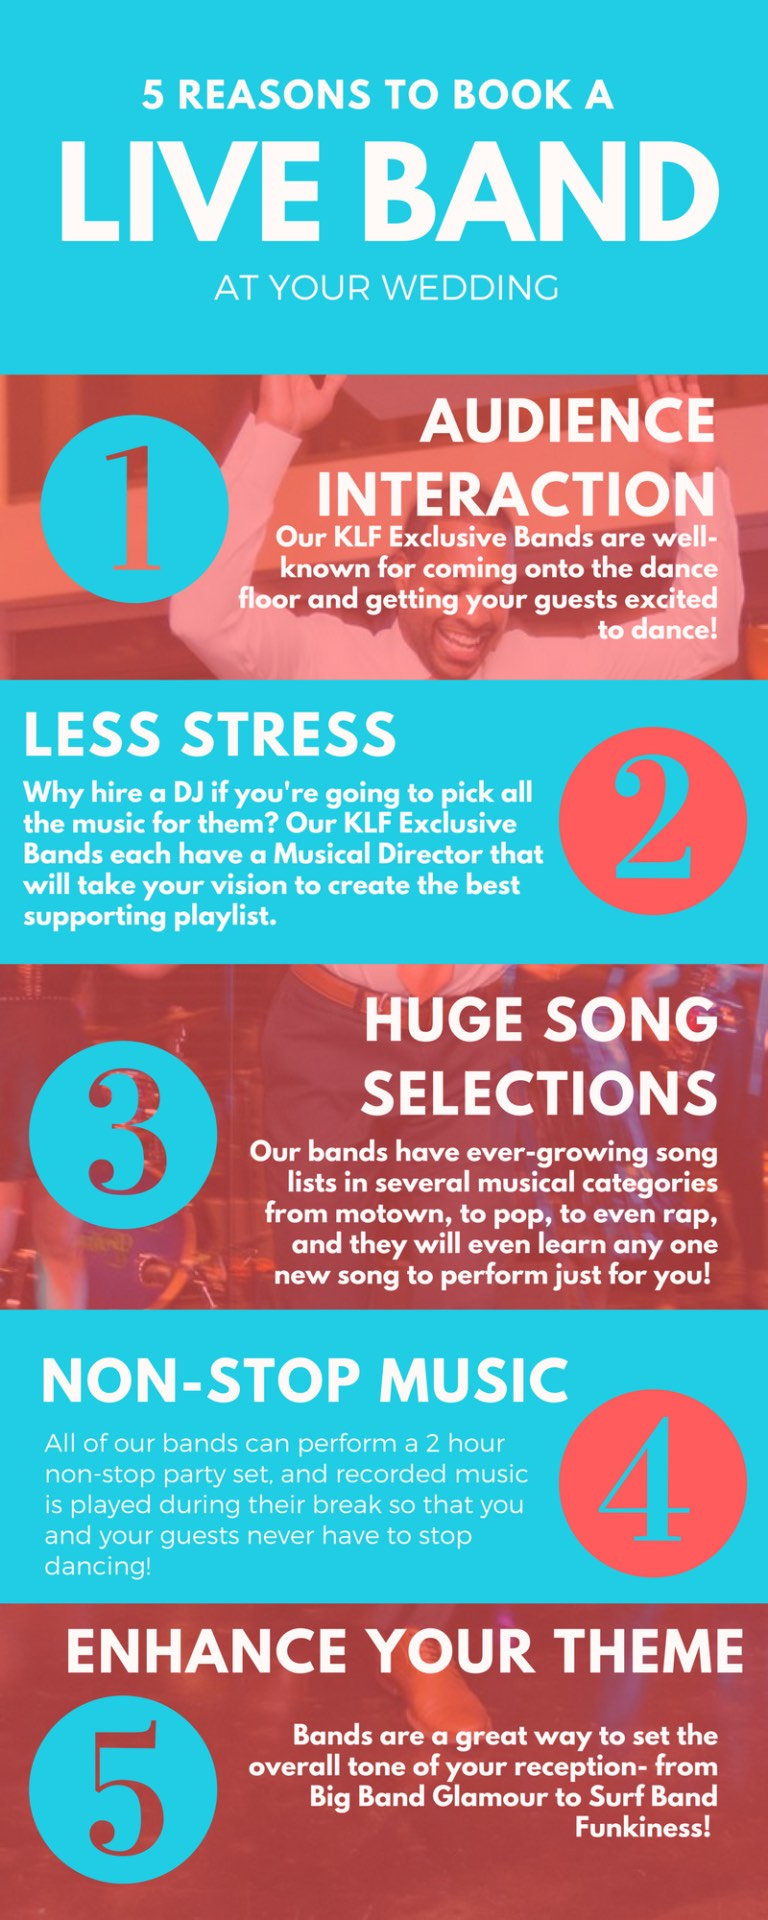 5 reasons to book a live band at your wedding infographic